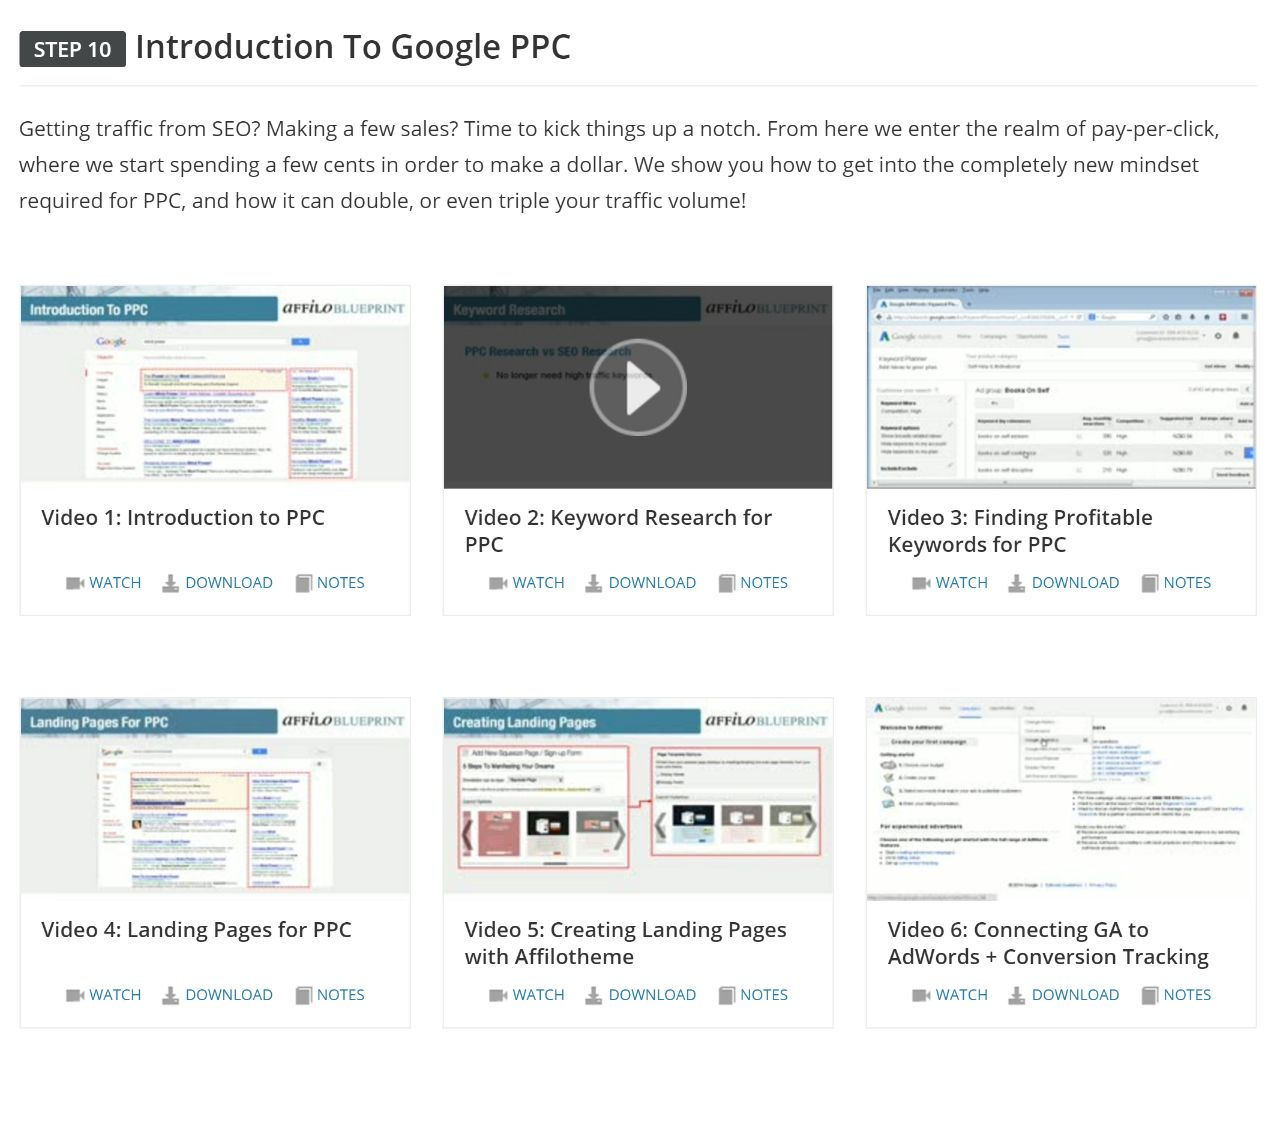 Step 10 - Introduction To PPC. A basic guide to Google Adwords and PPC and how it can be used to drive traffic to your affiliate site.